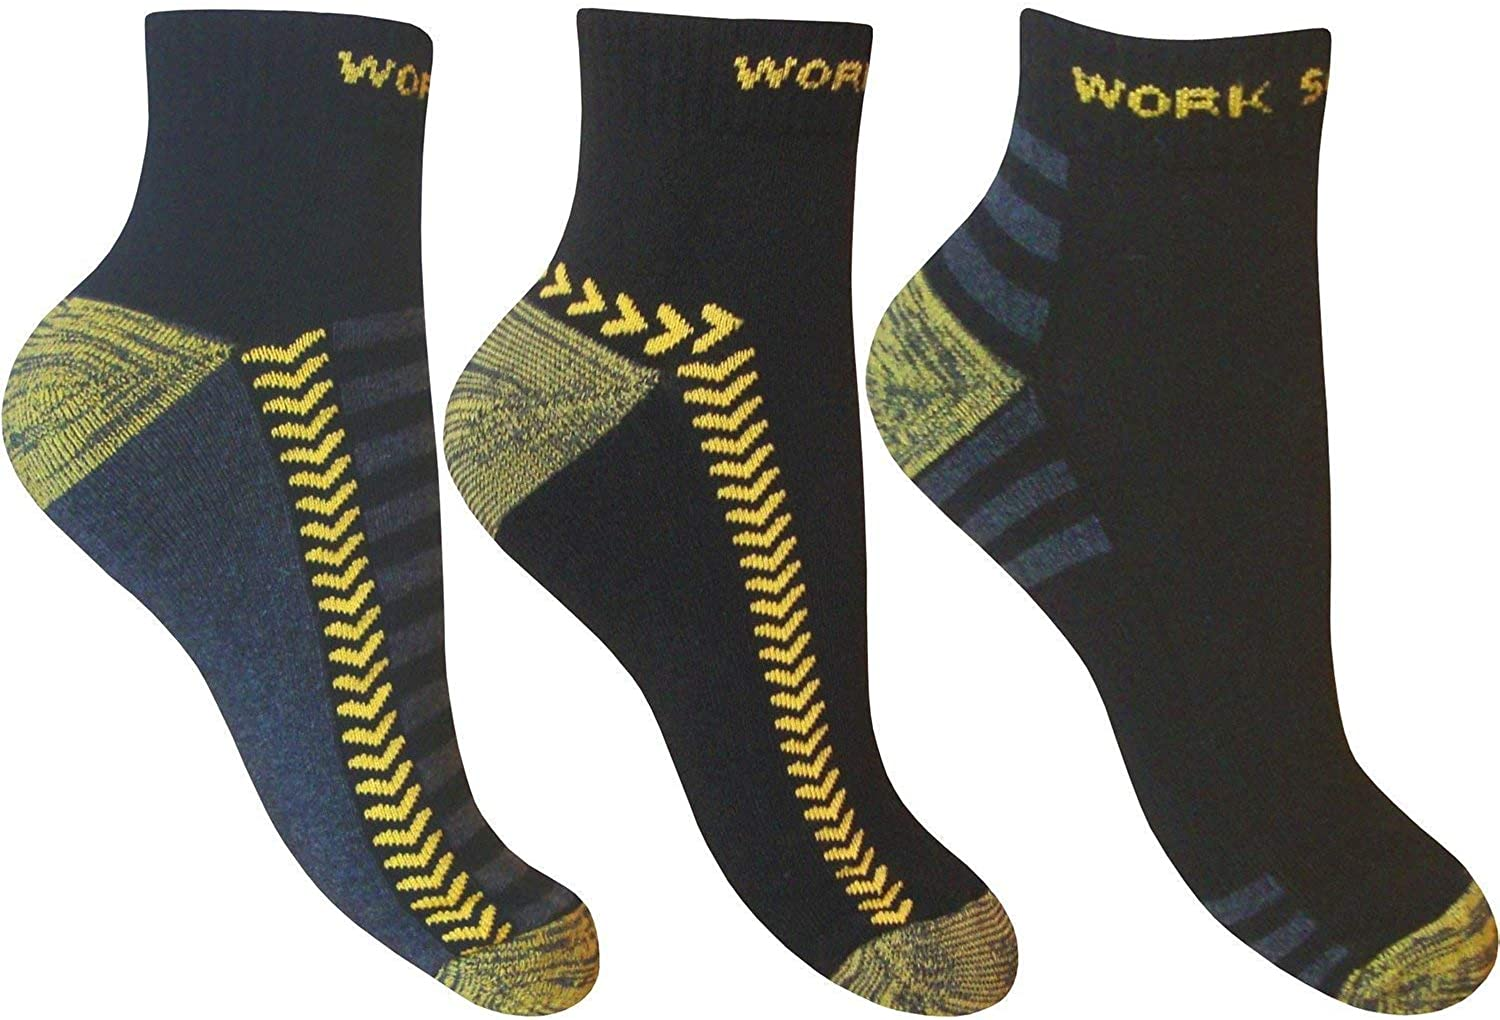 3 Pairs Mens Socks Trainer Sports Cotton Ankle Socks Heel Protection Size 6-11